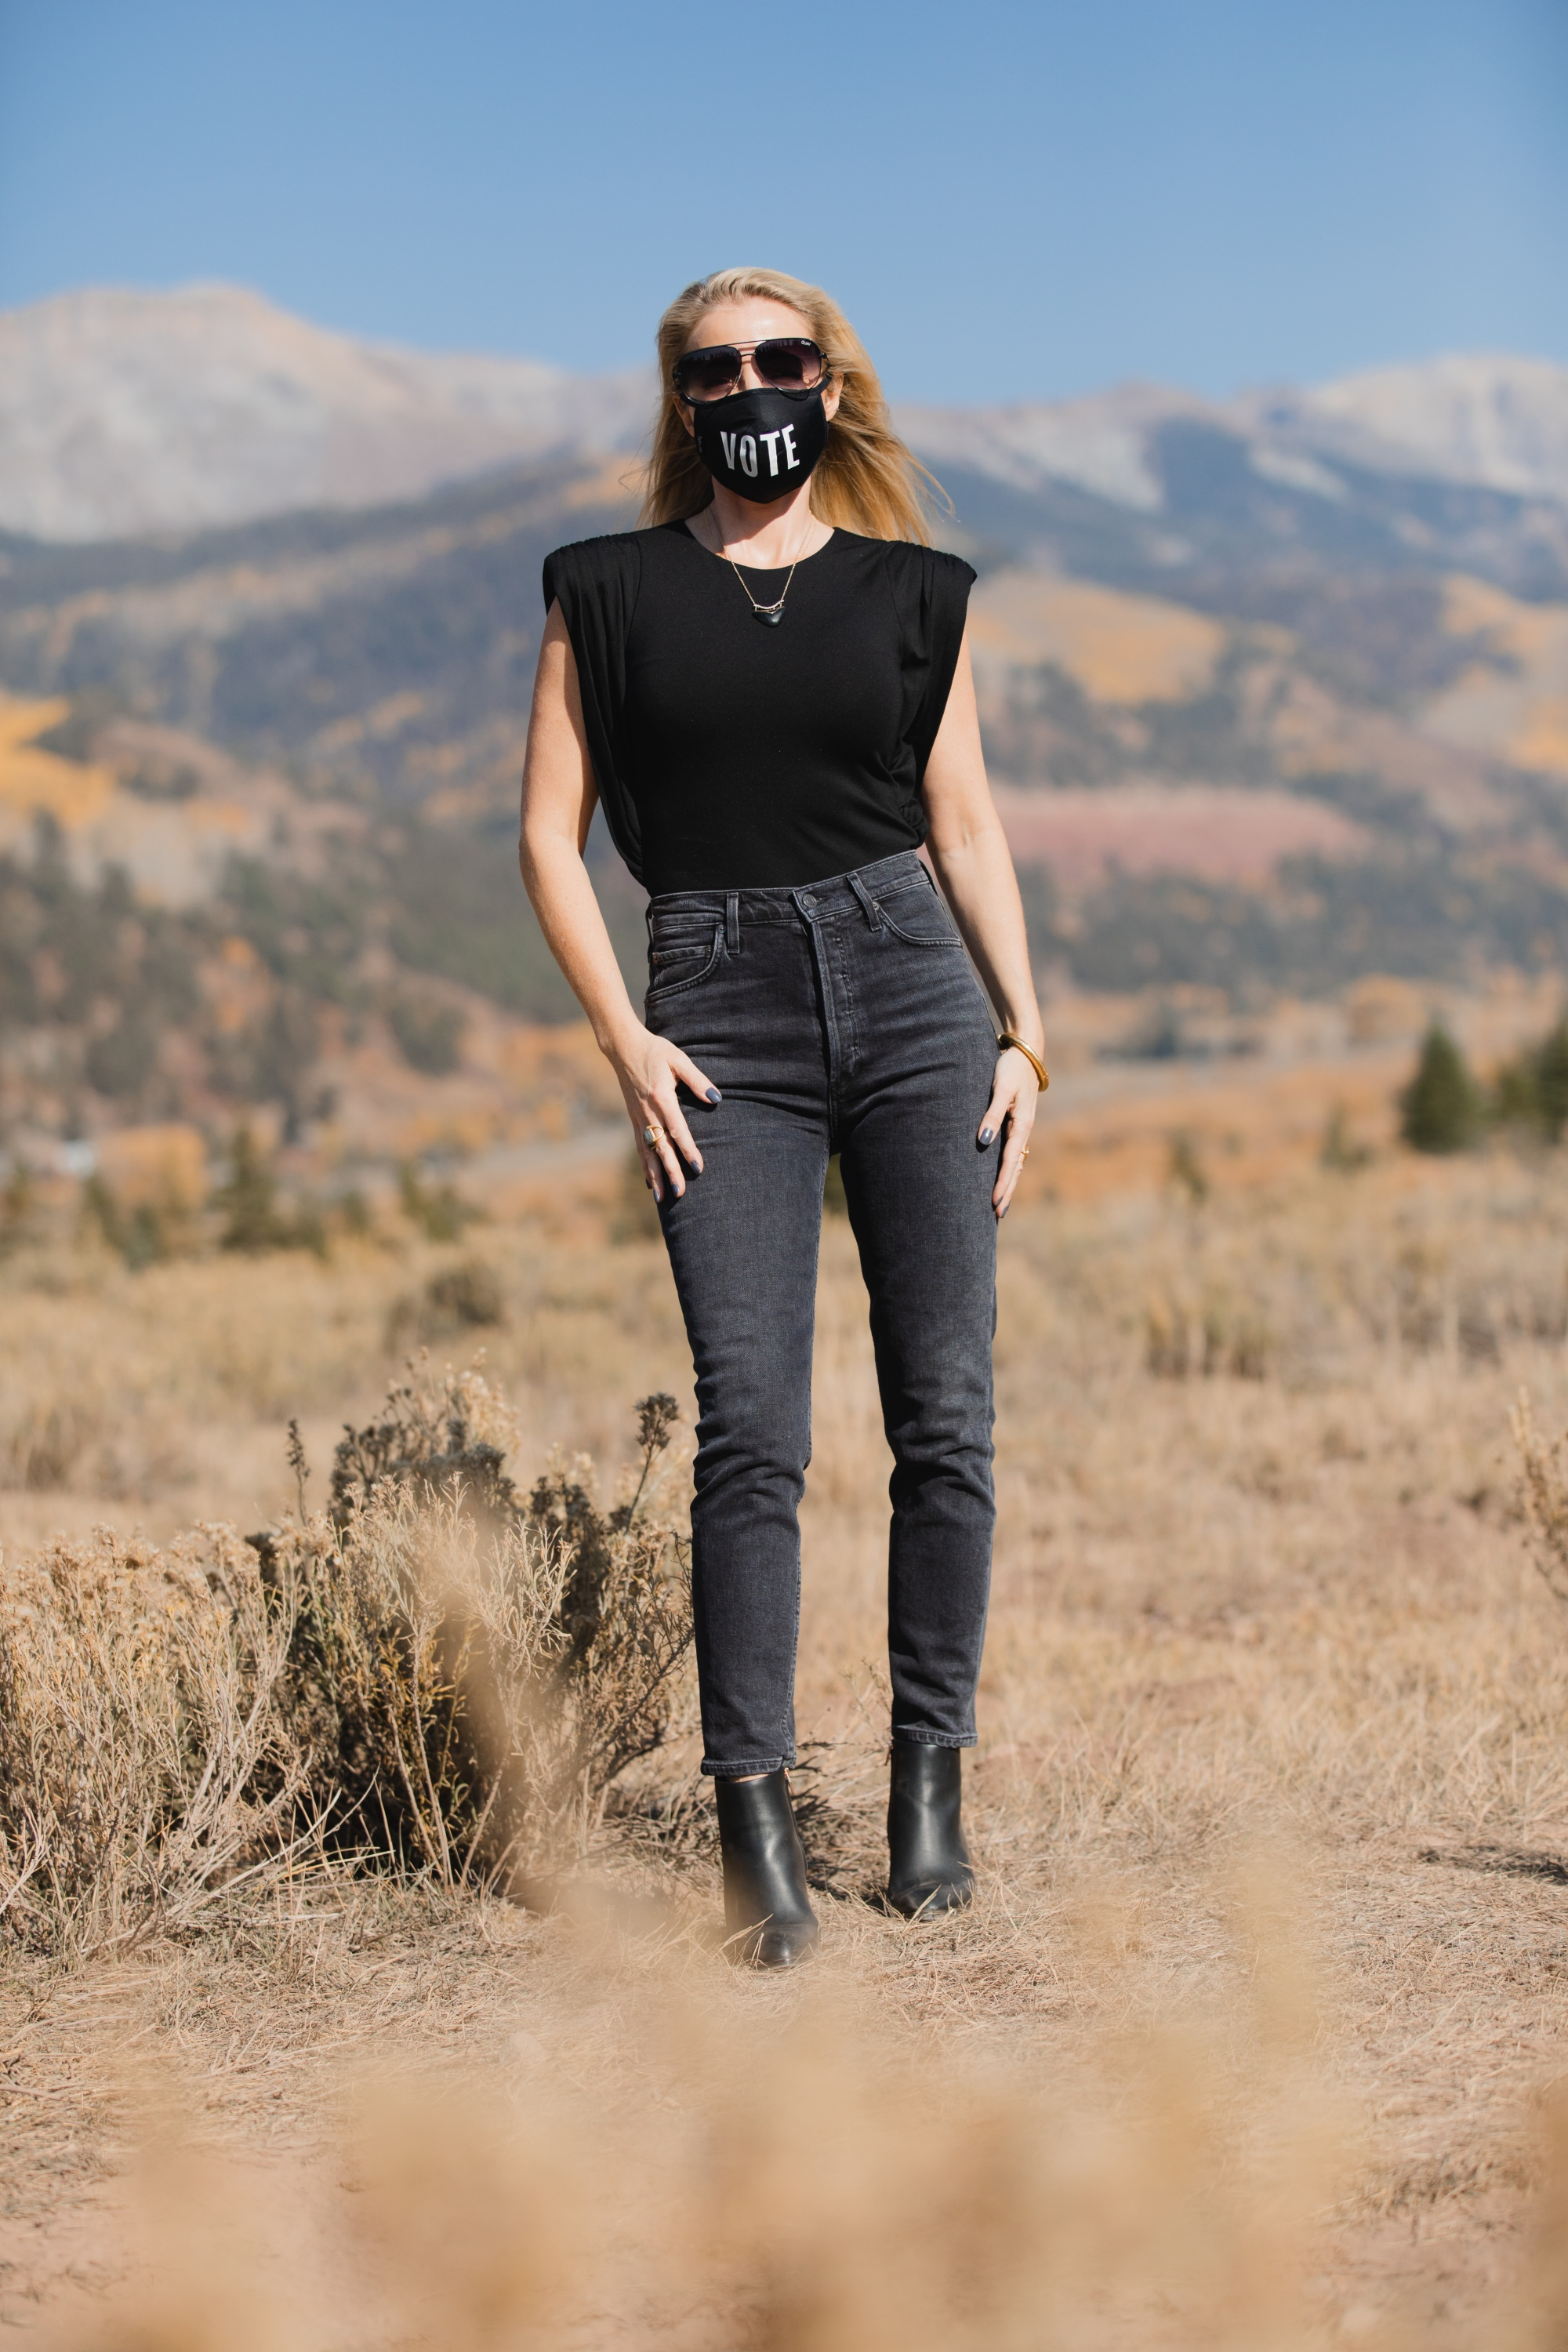 How To Wear A Cargo Jacket, Erin Busbee of Busbee Style wearing a black muscle tee tank by Aqua, gray wash Nico slim fit jeans by Agolde, QUAY sunglasses, Vote mask, and Alexander Wang cutout booties from Bloomingdale's in Telluride, Colorado